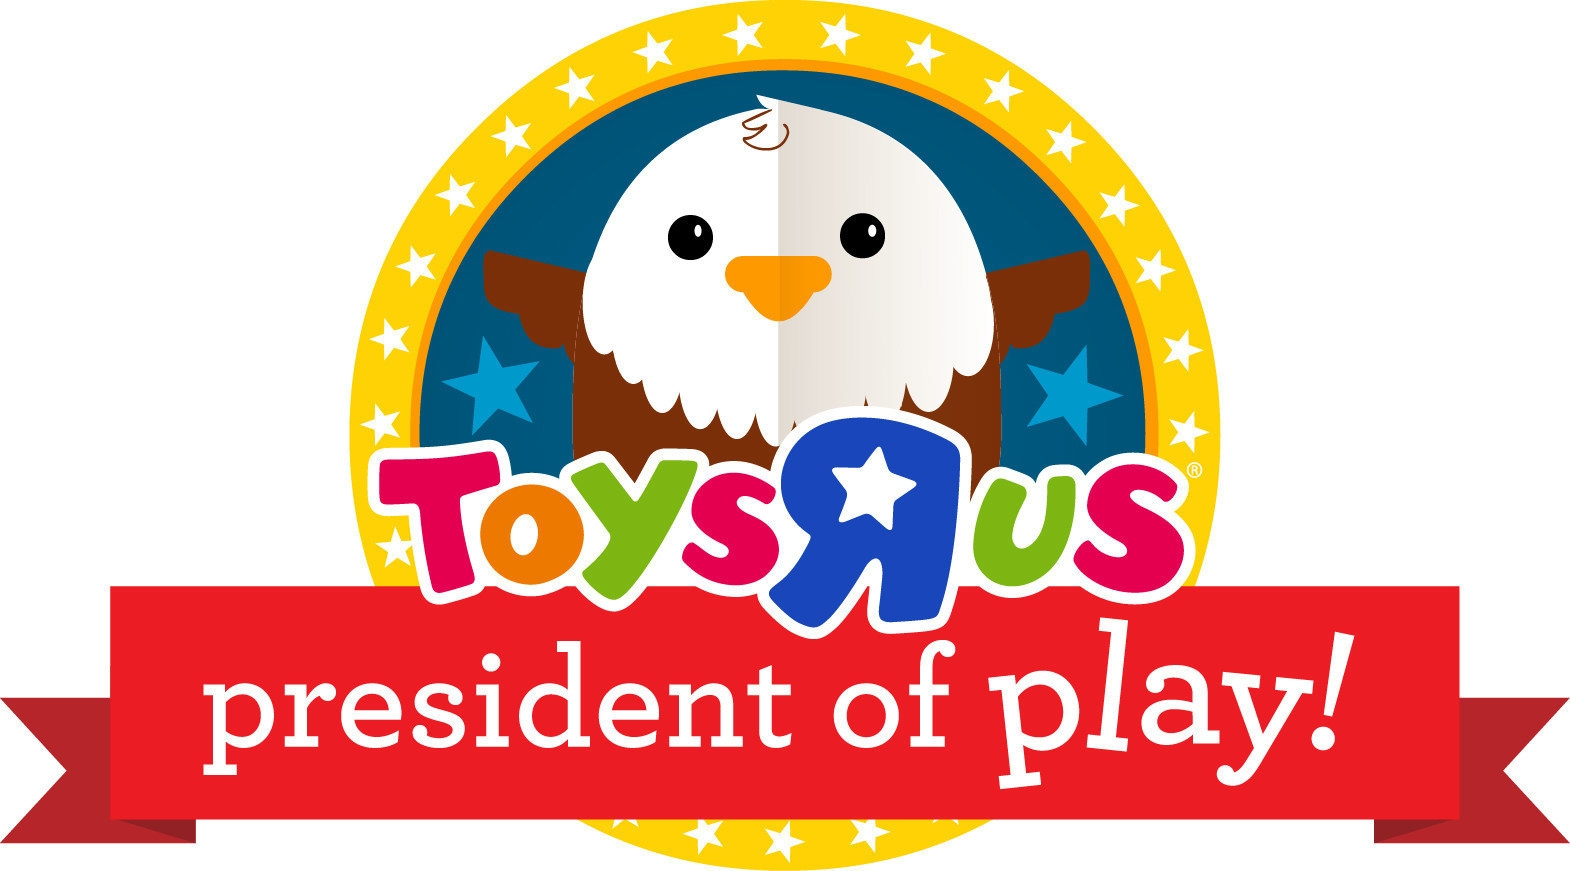 President Of Play, A Girl Is President Of Play #PresidentofPlay